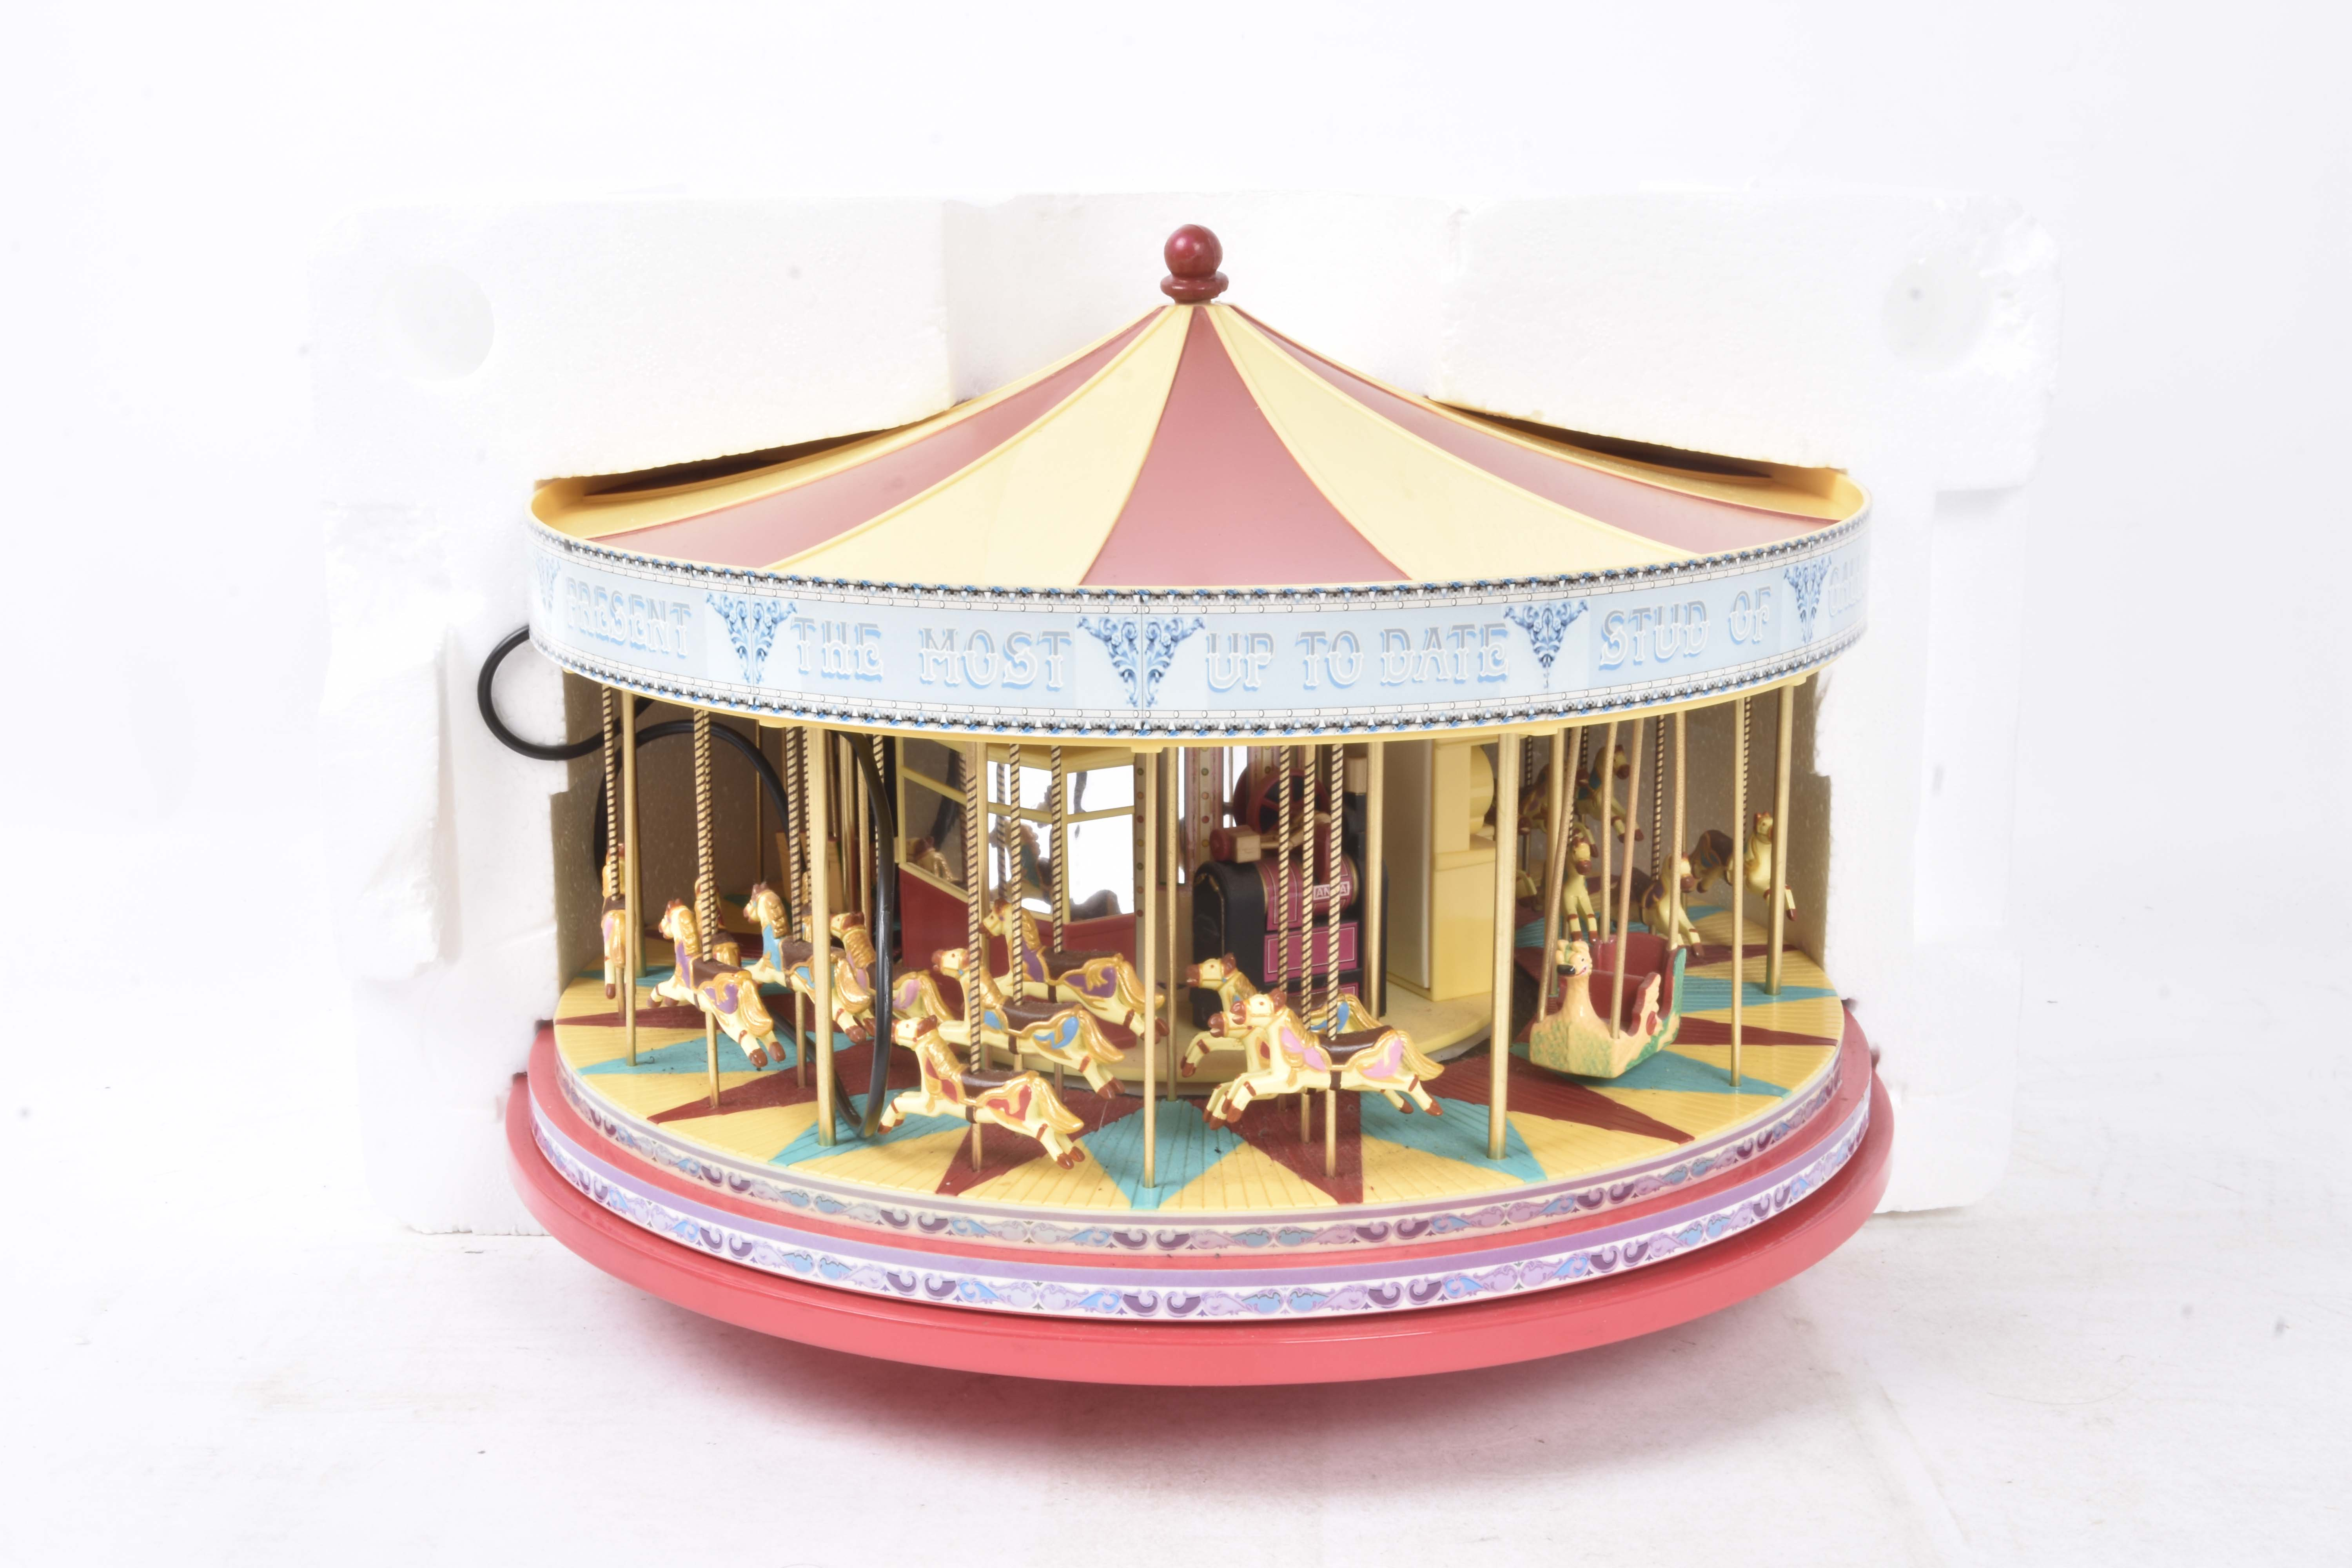 Corgi Anderson & Rowland Steam Gallopers Fairground Ride, 1:50 scale CC20403 from the Vintage